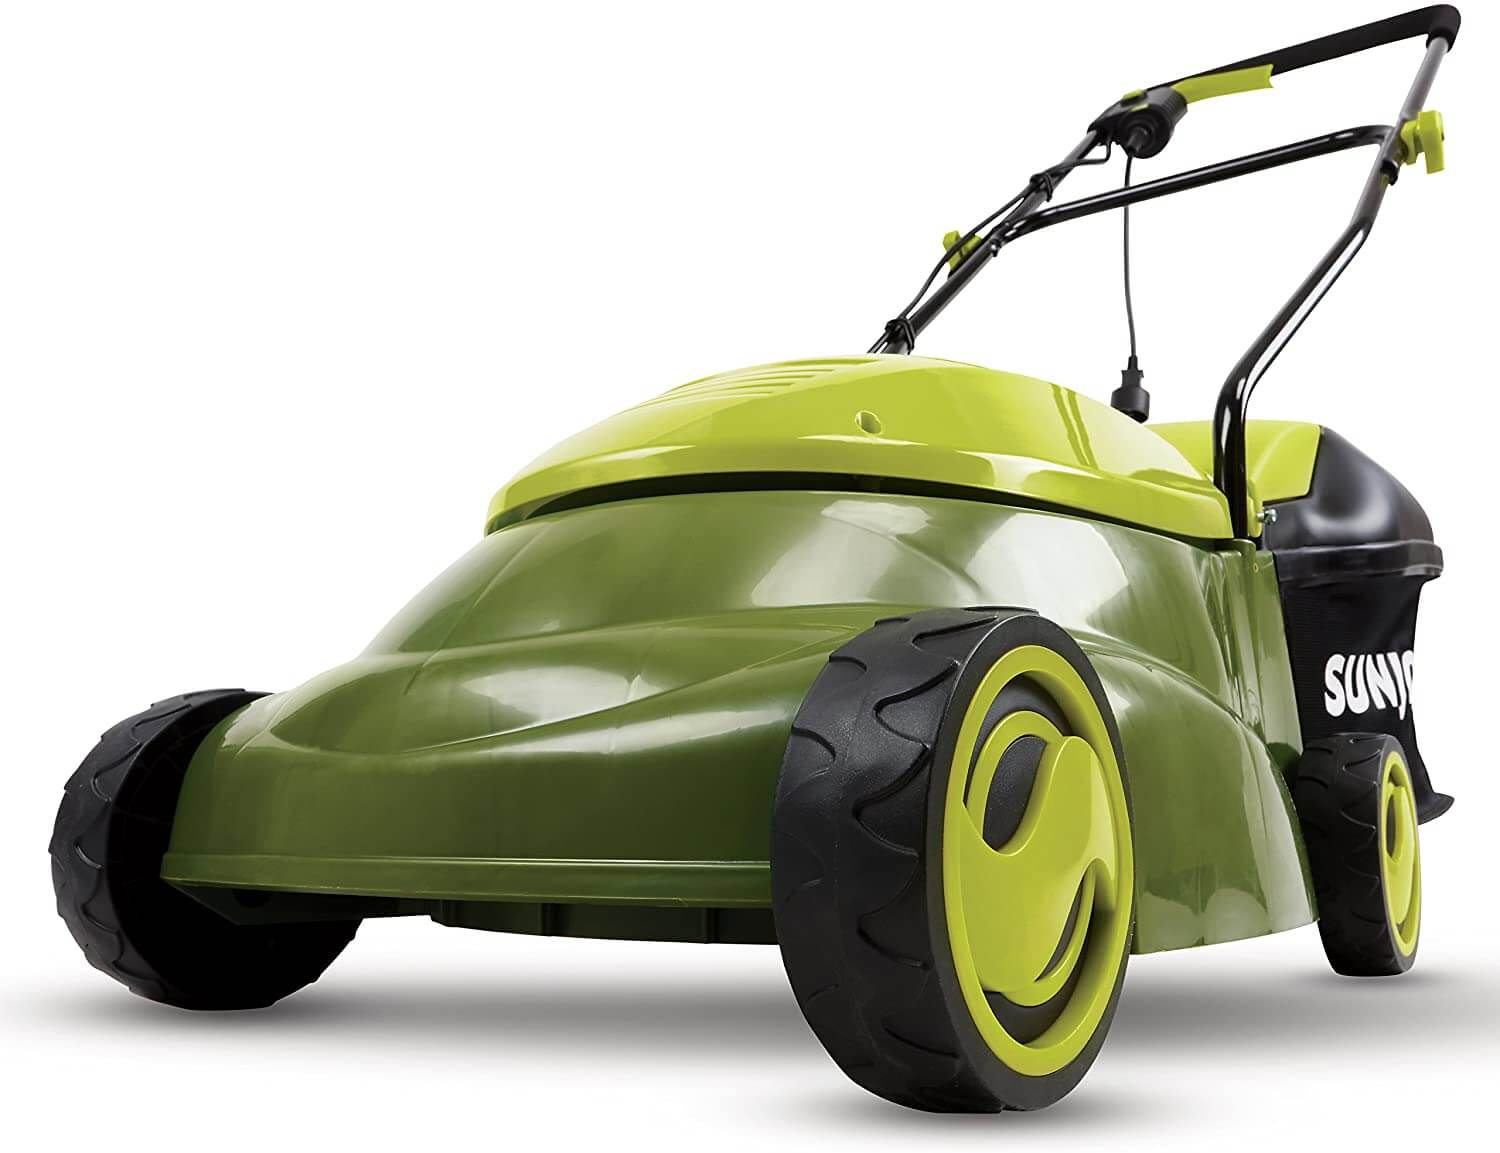 Sun Joe PRO 14 Inch Electric lawn Mower